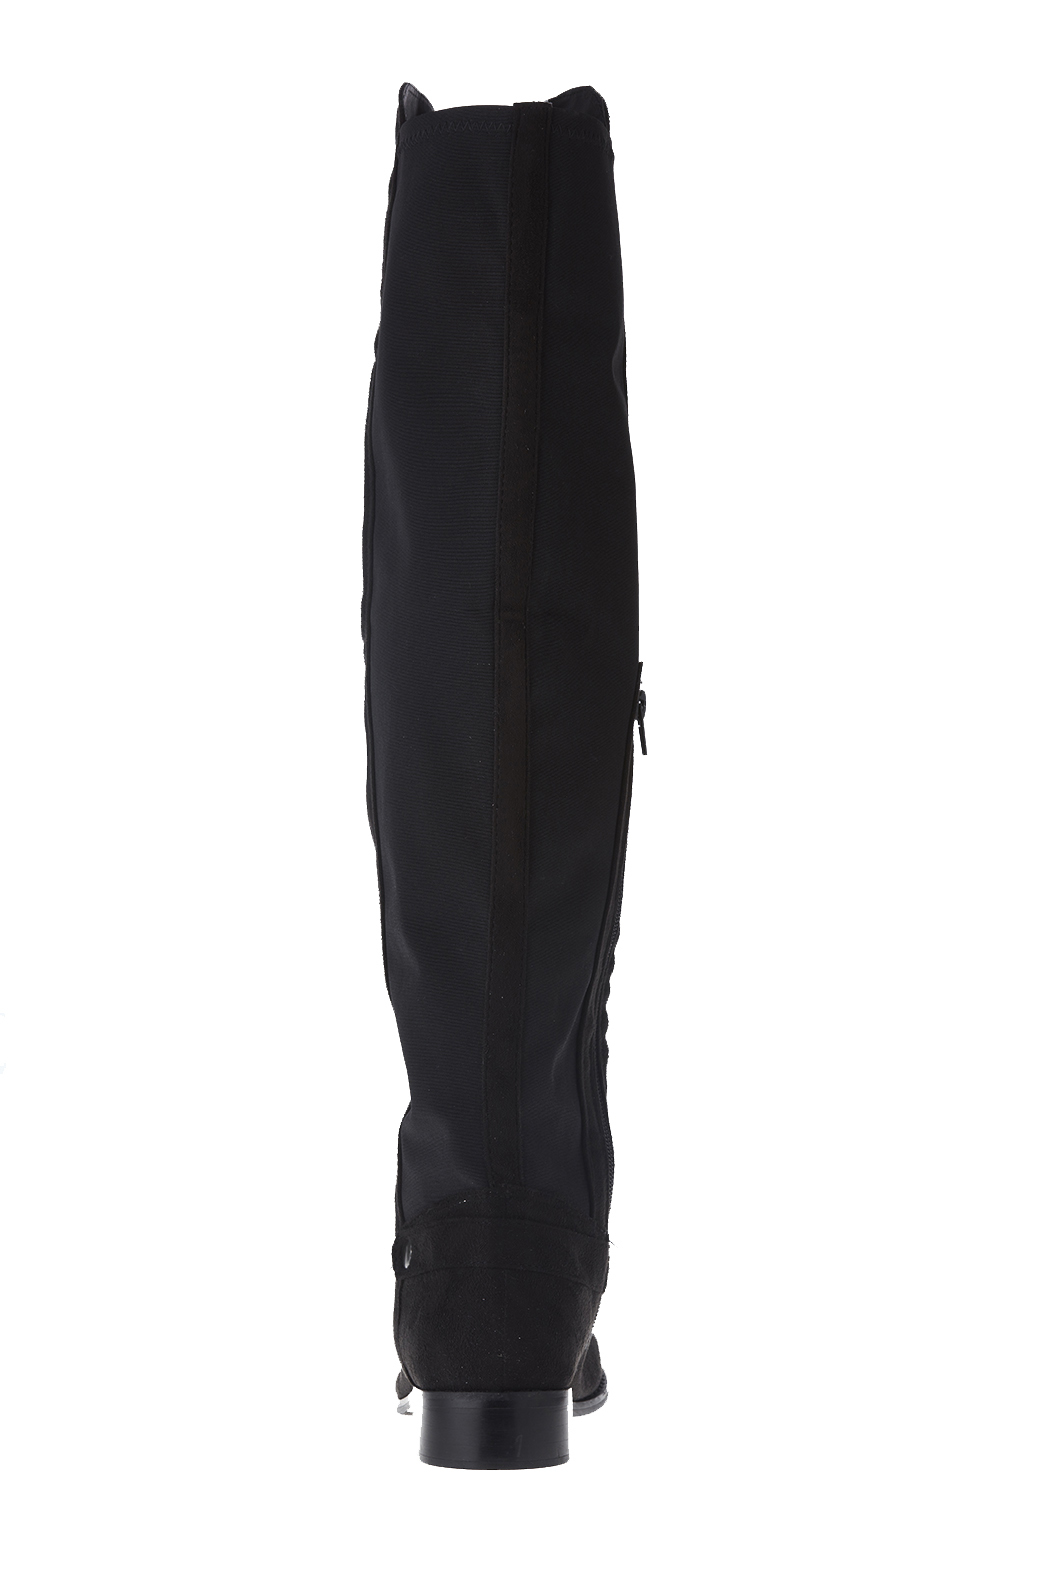 Jacobies Brandi Tall Boots - Front Full Image